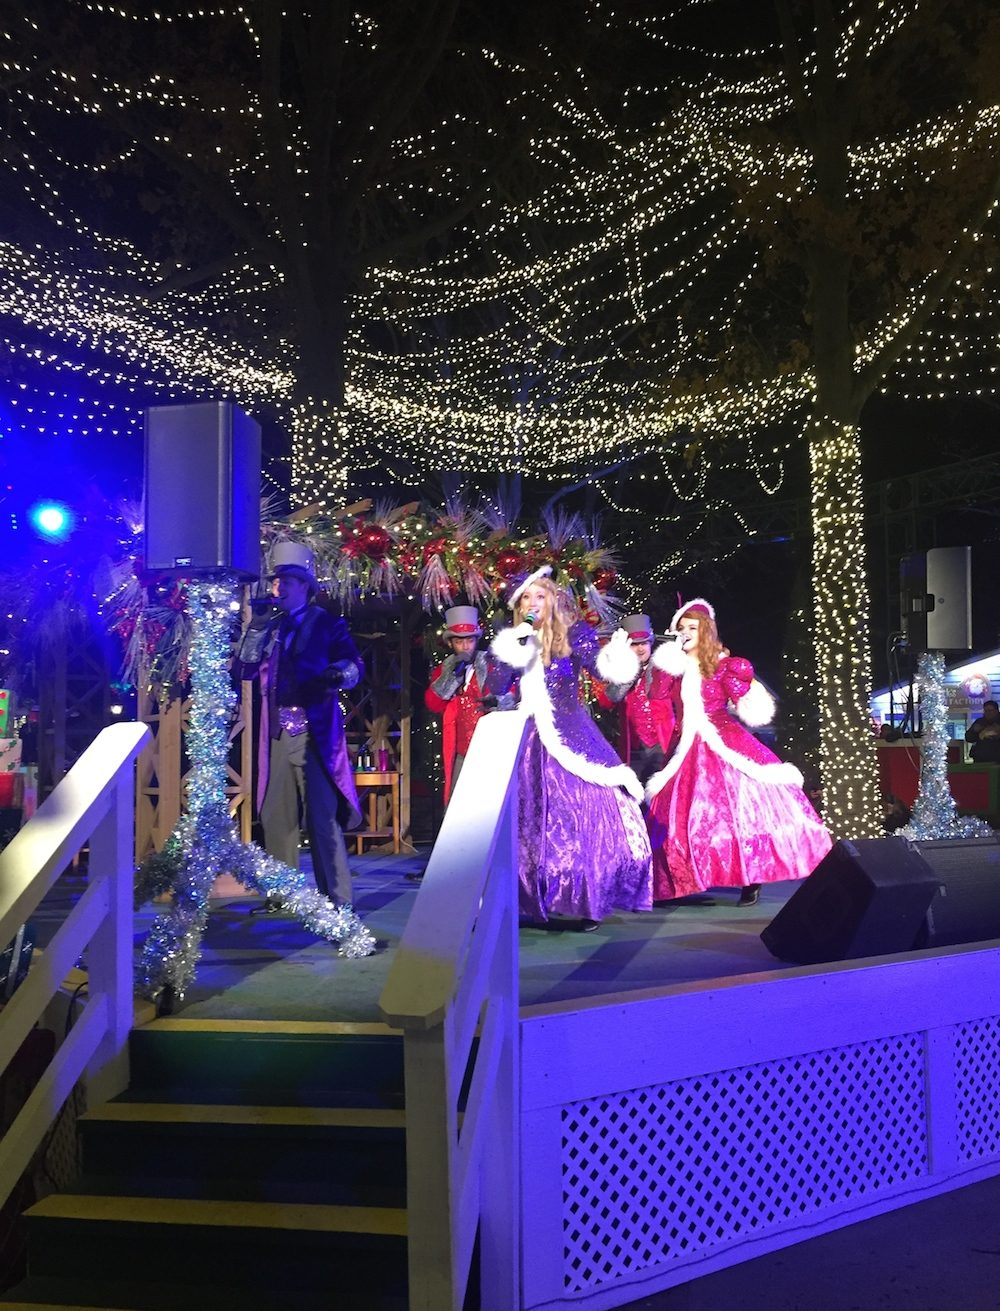 The Jingle Jazz ensemble performing at at Worlds of Fun's WinterFest in Kansas City, Missouri